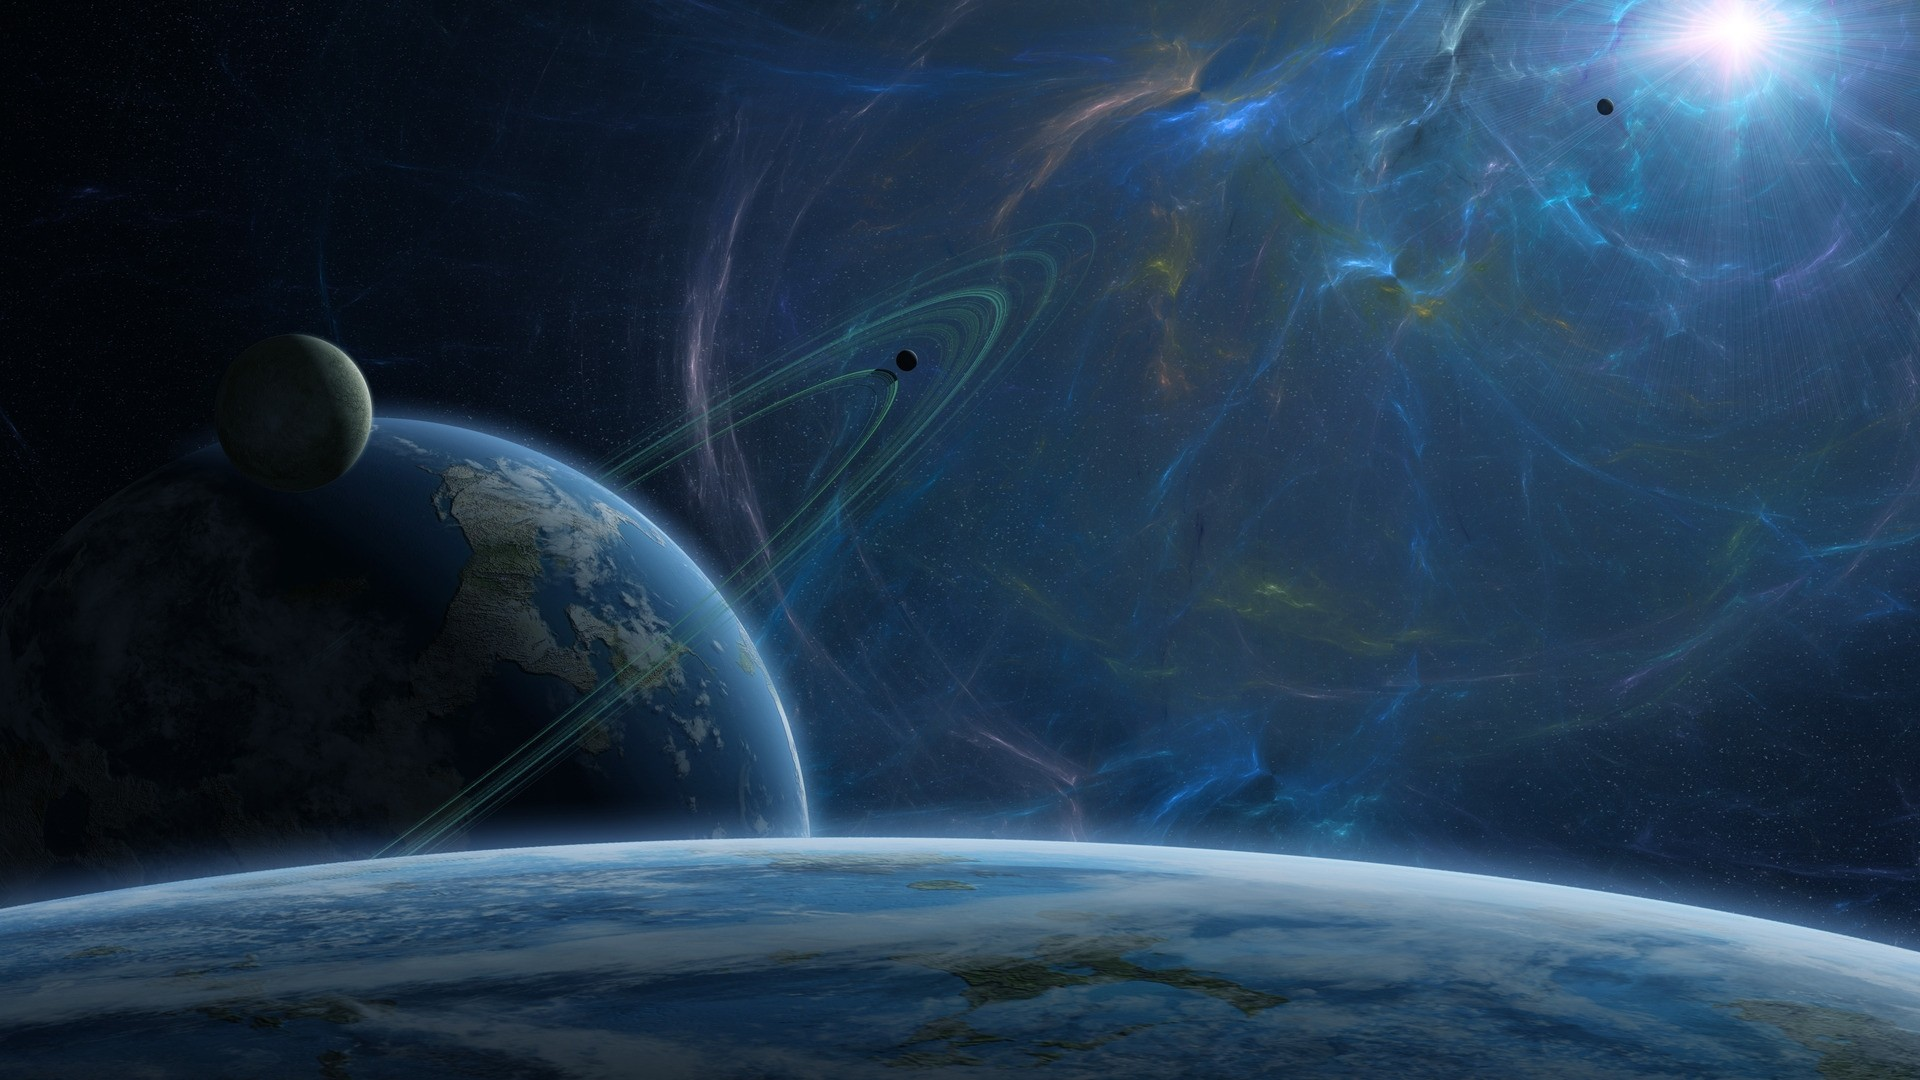 Outer Space Full HD Wallpaper